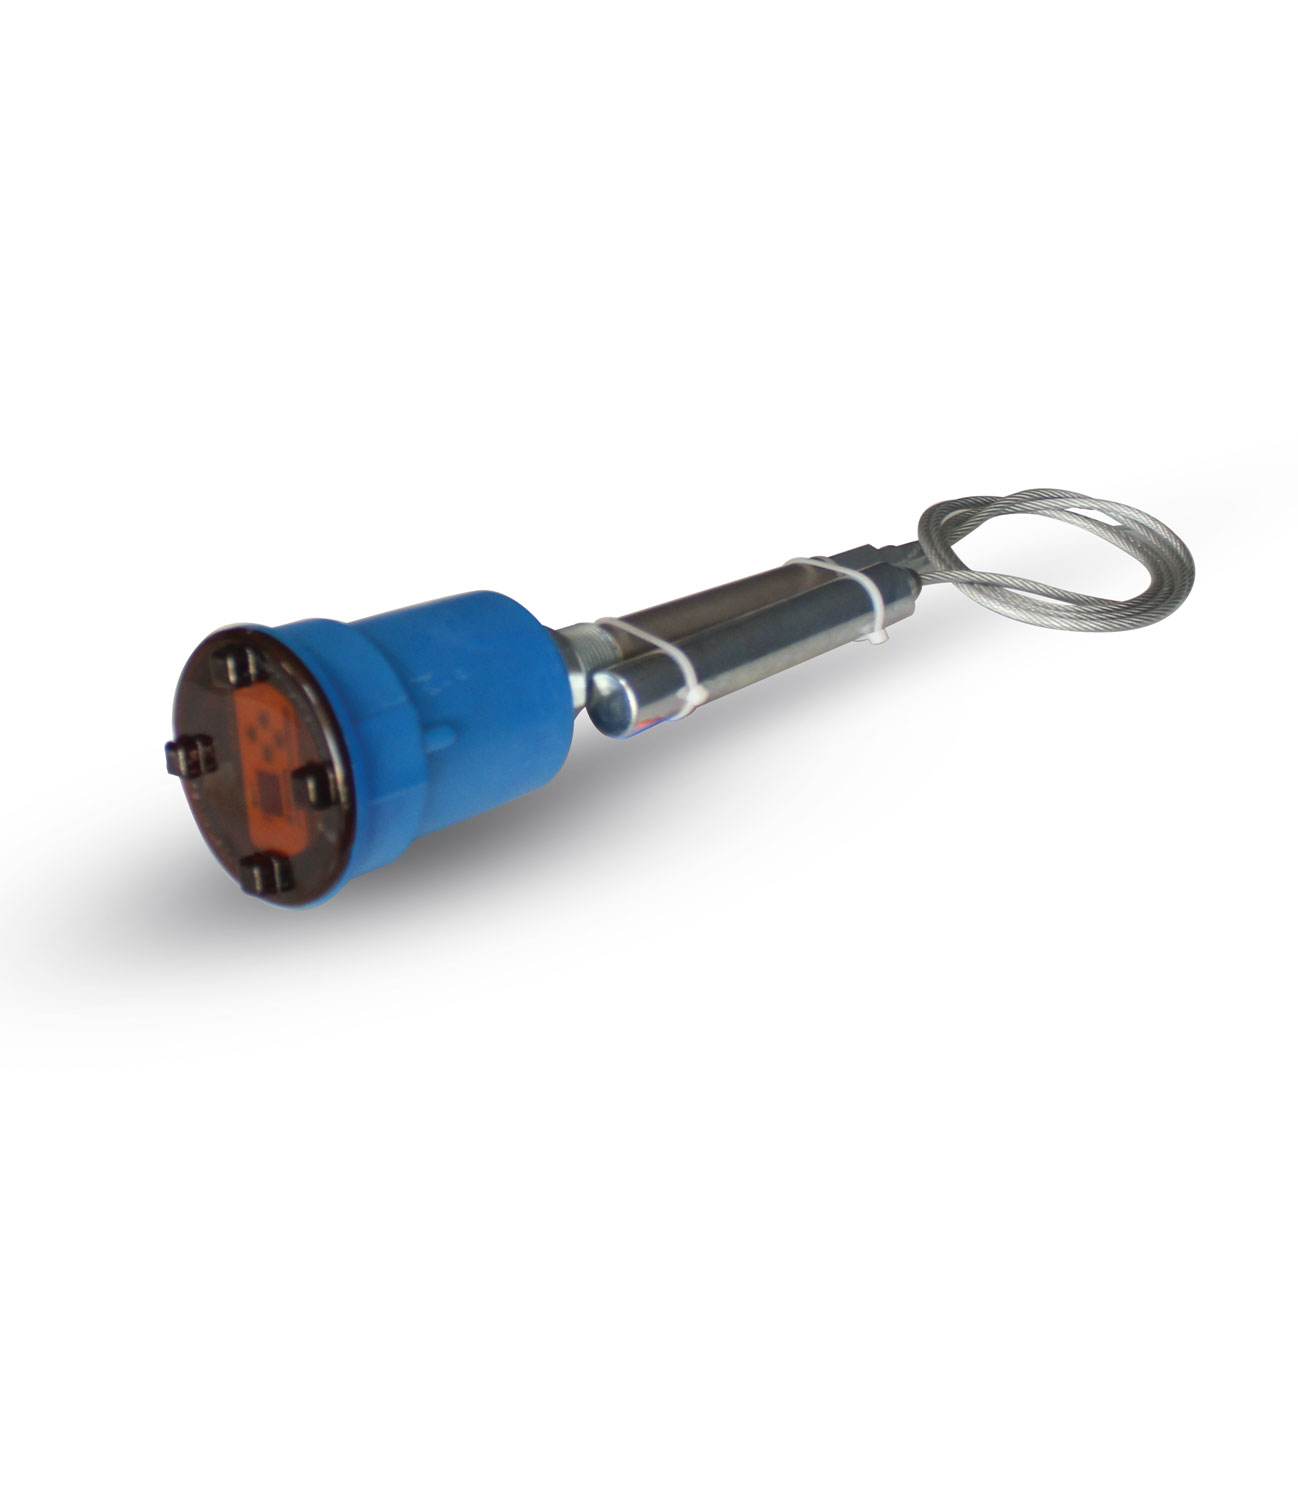 Digital Capacitive Level Sensor (with Rope)1